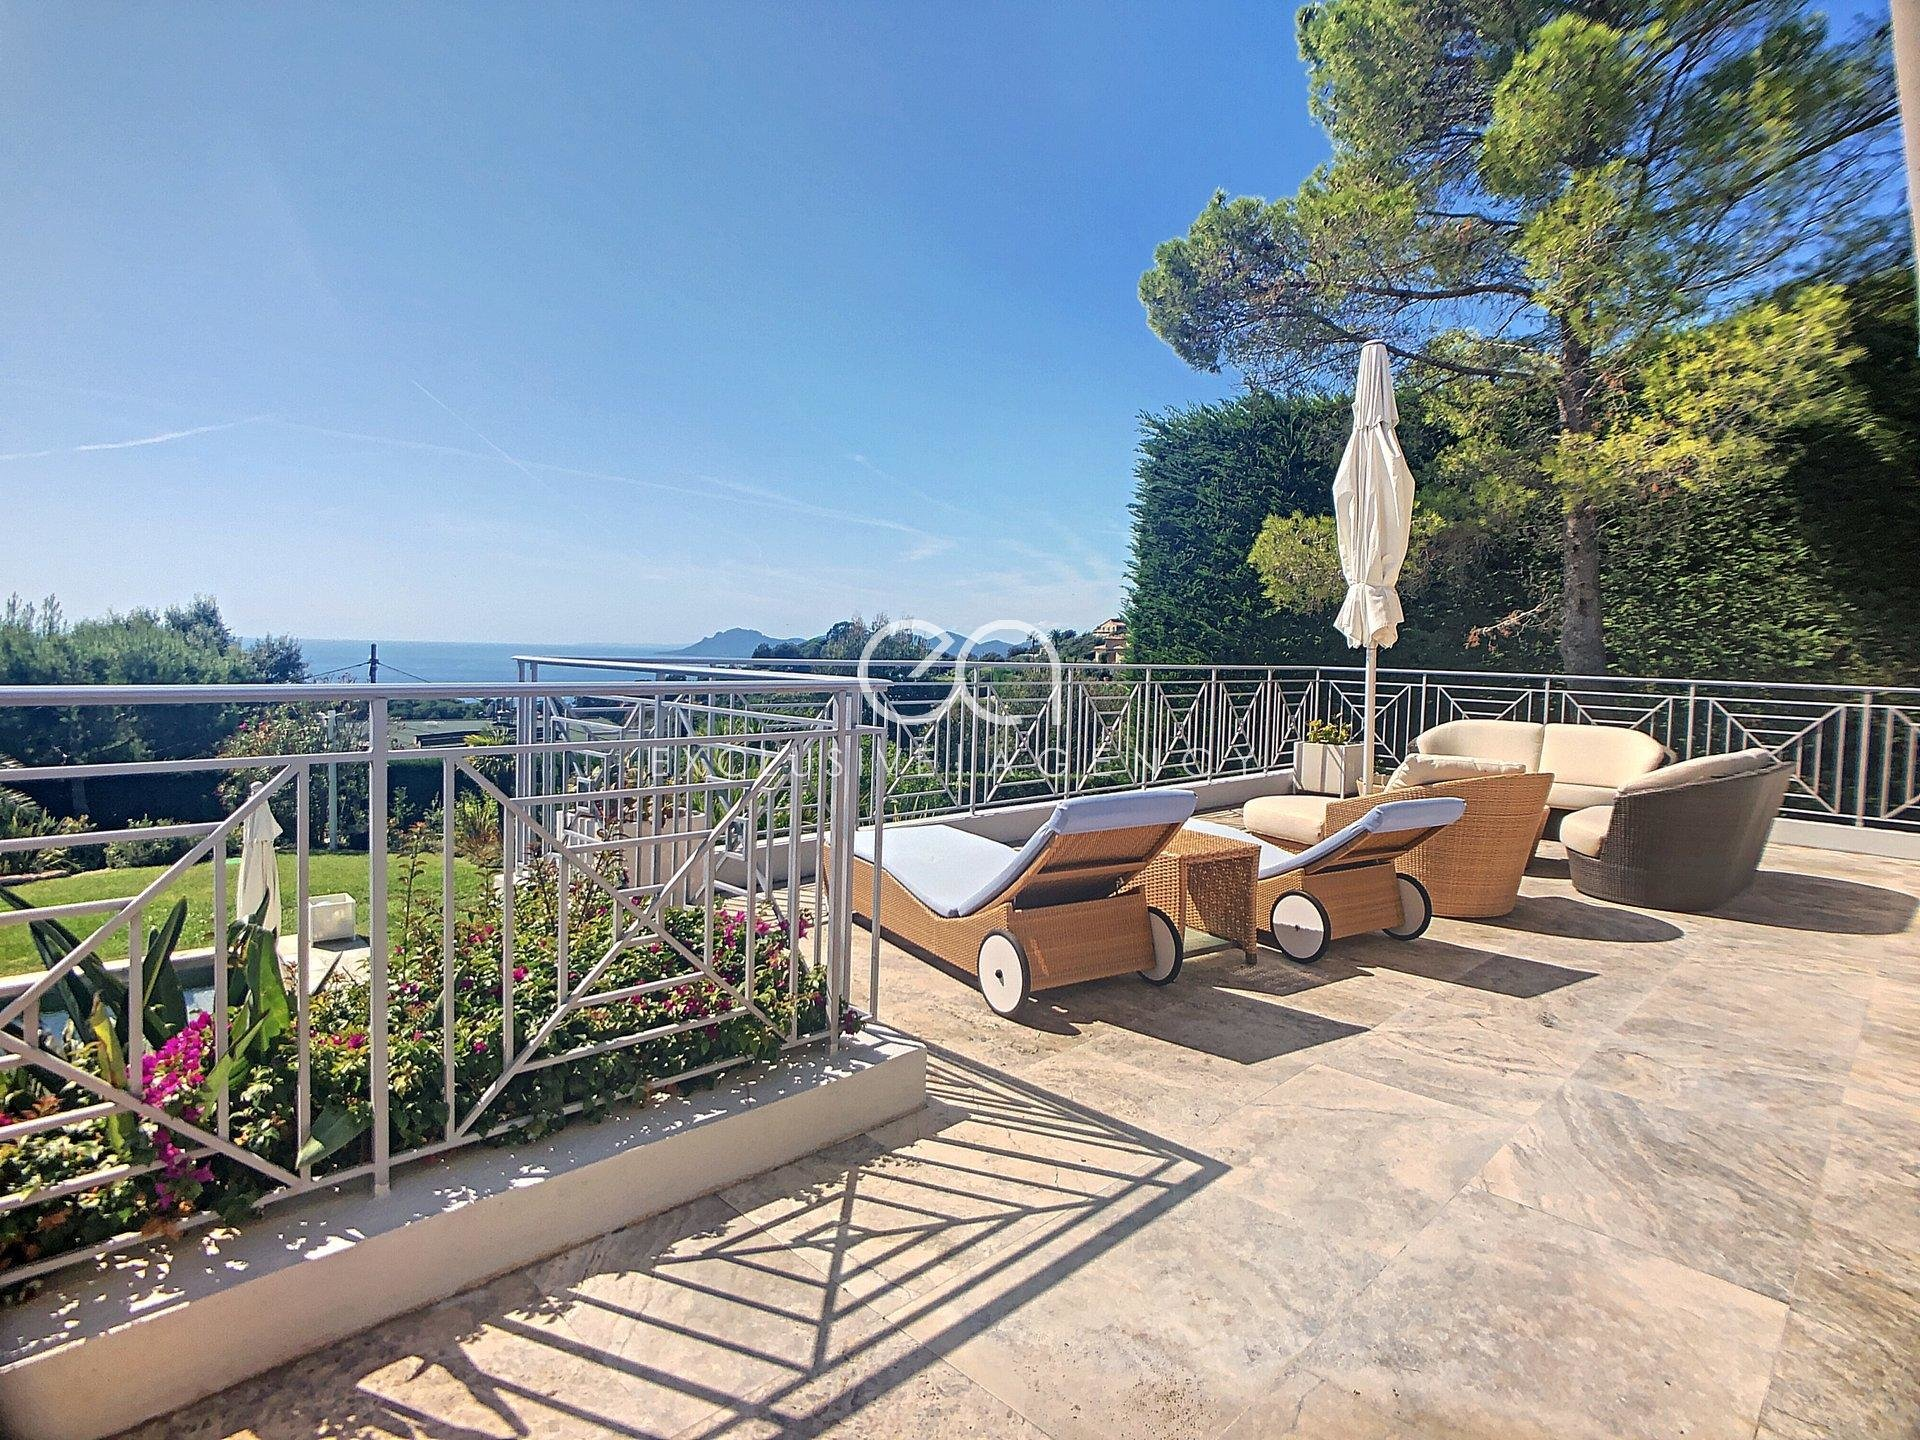 Super Cannes Luxury furnished villa for long term rental 260sqm 7-room with stunning panoramic sew view and heated pool